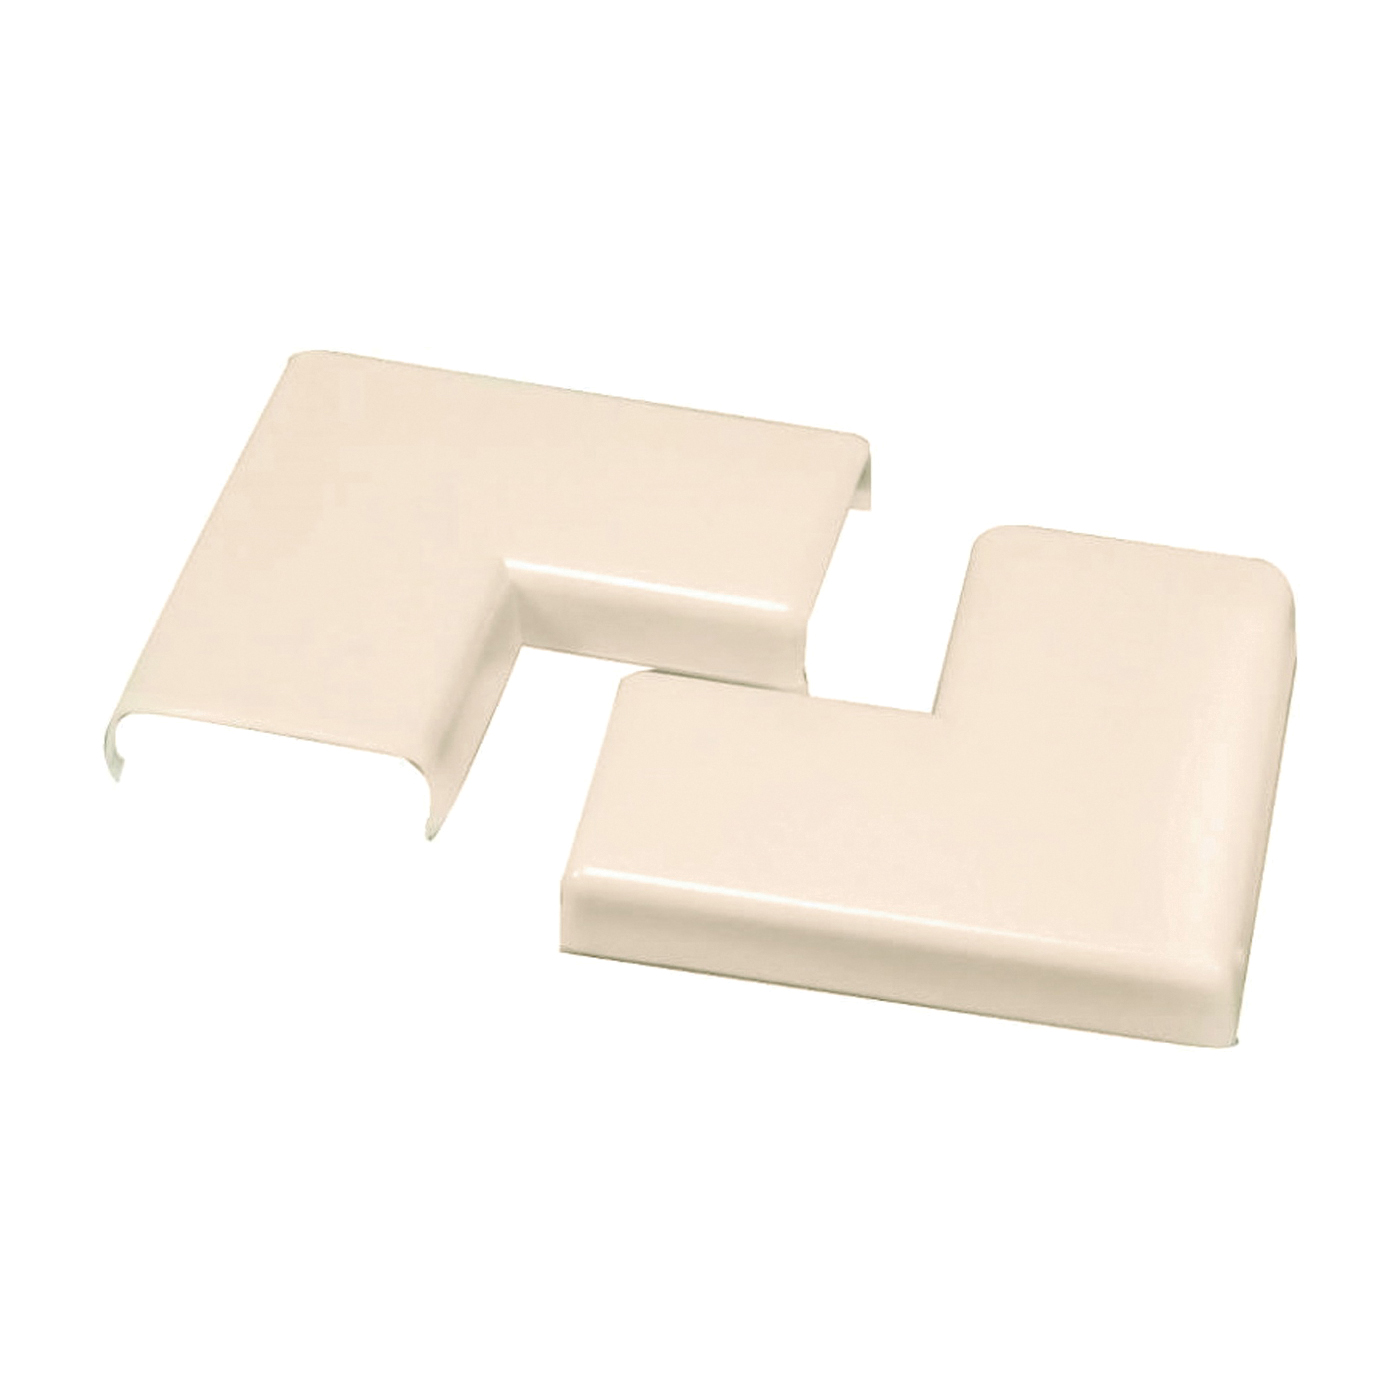 Picture of Legrand Wiremold NM6 Raceway Elbow, Flat, Non-Metallic, Plastic, Ivory